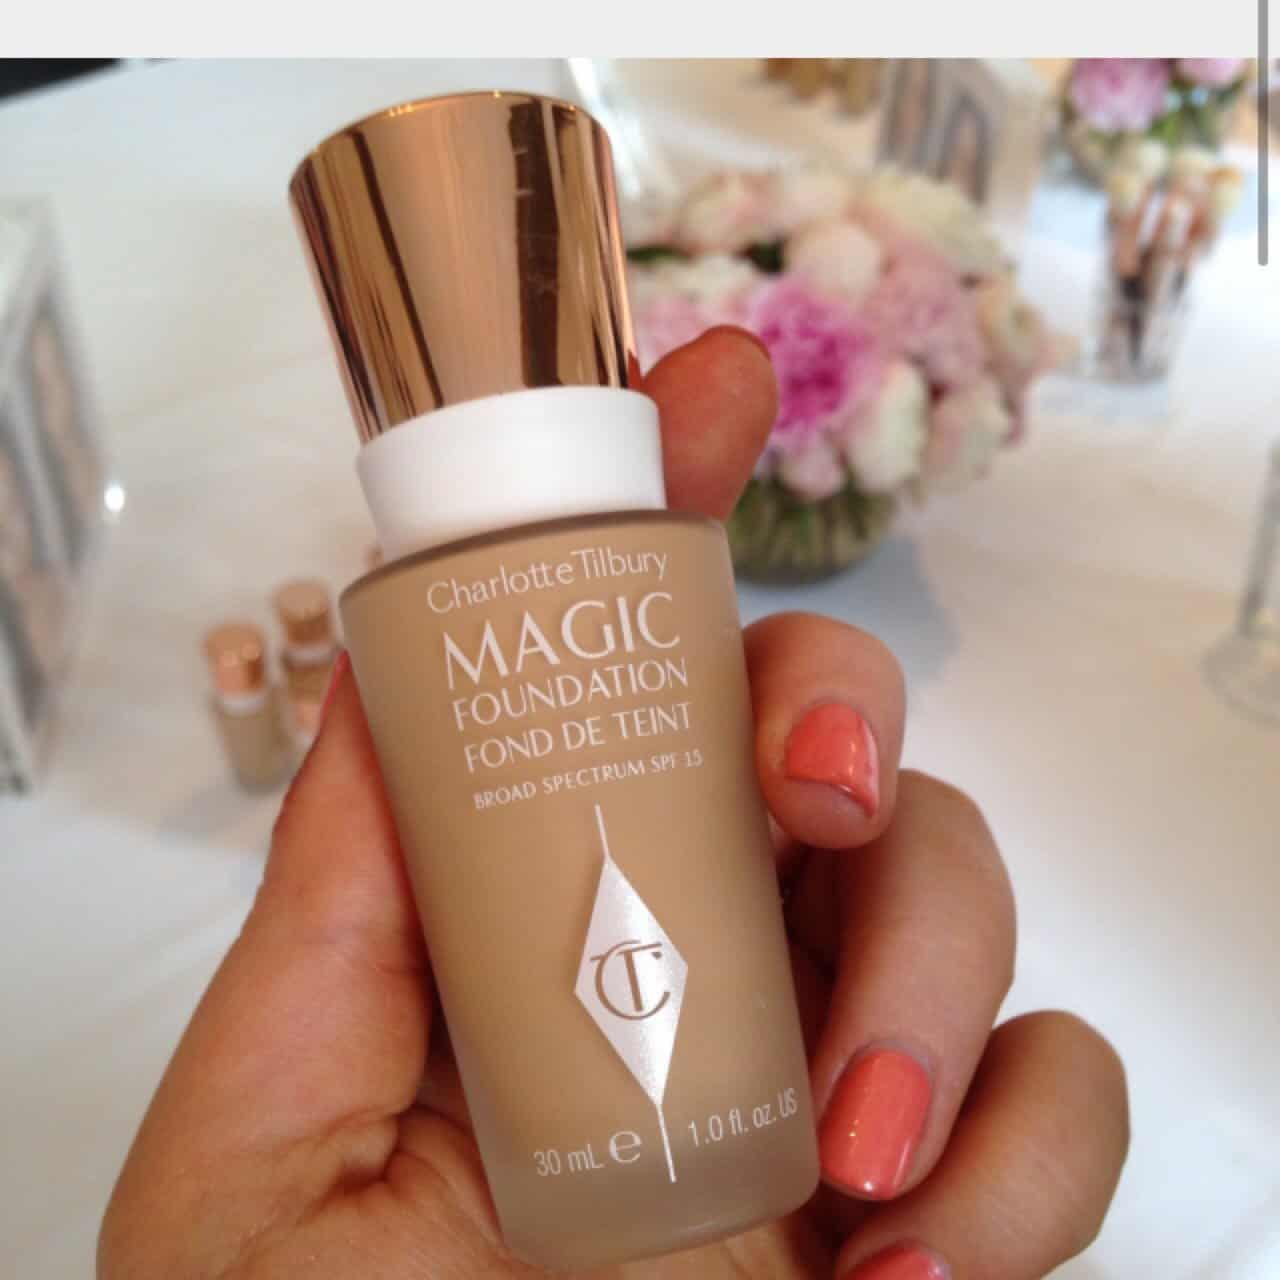 CHARLOTTE TILBURY Magic Foundation Flawless Long-Lasting Coverage SPF15 – Shade.